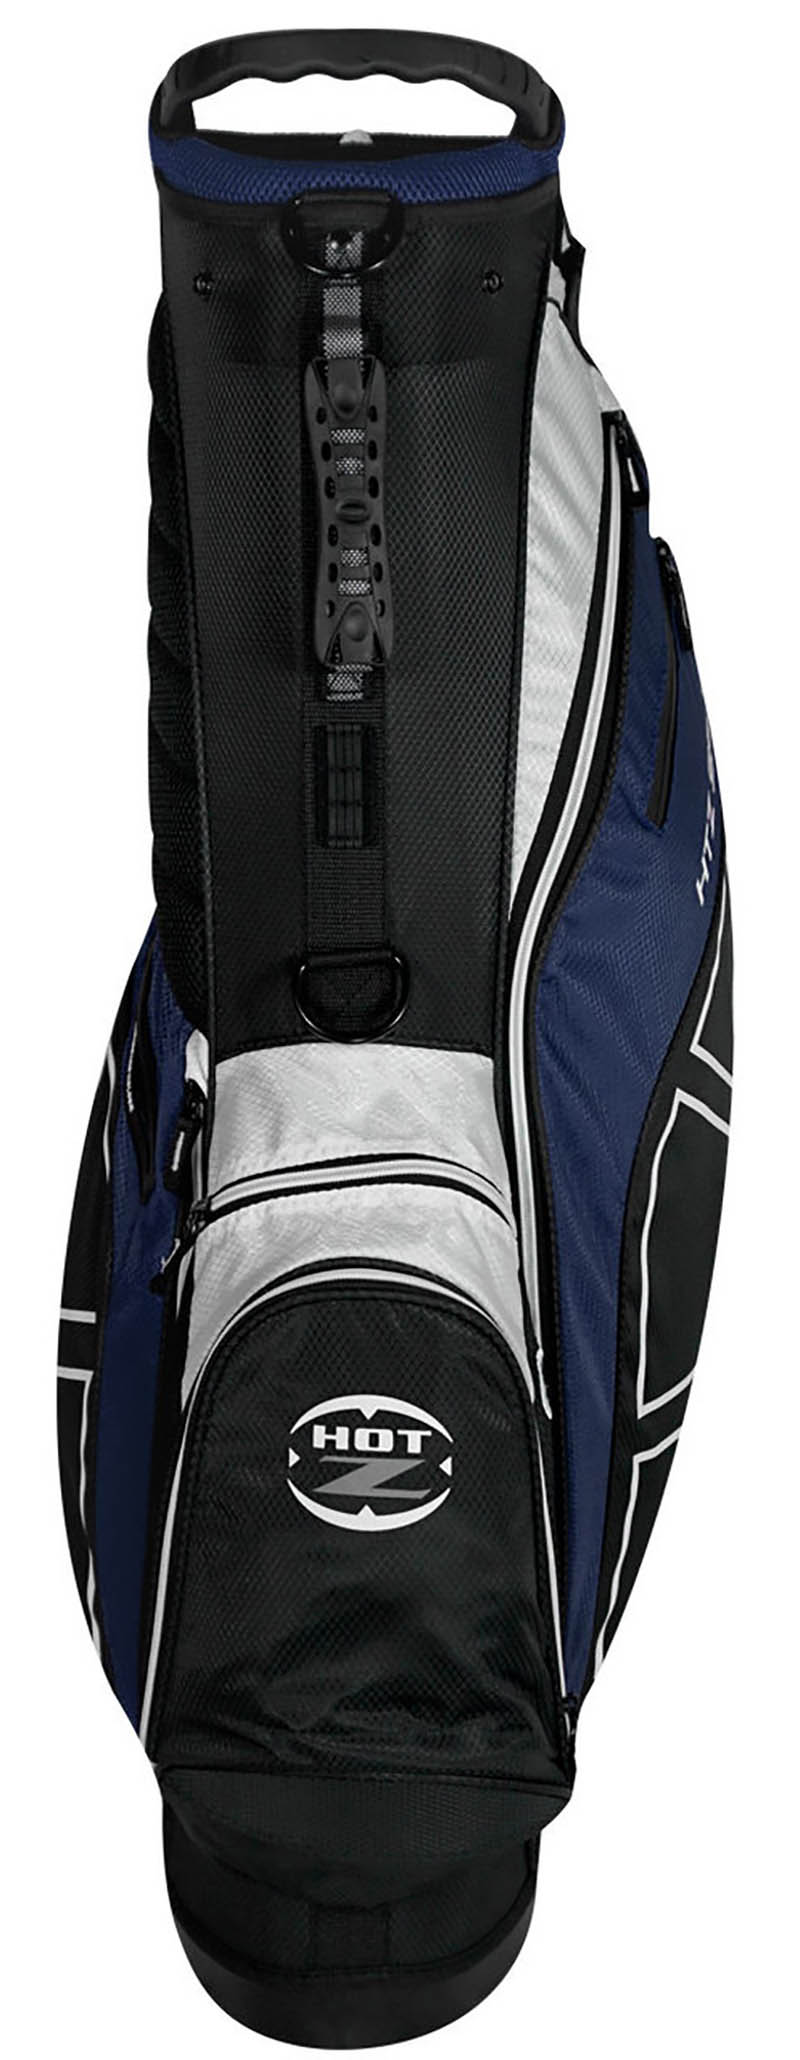 Talega de golf Hot Z Sport Azul 01